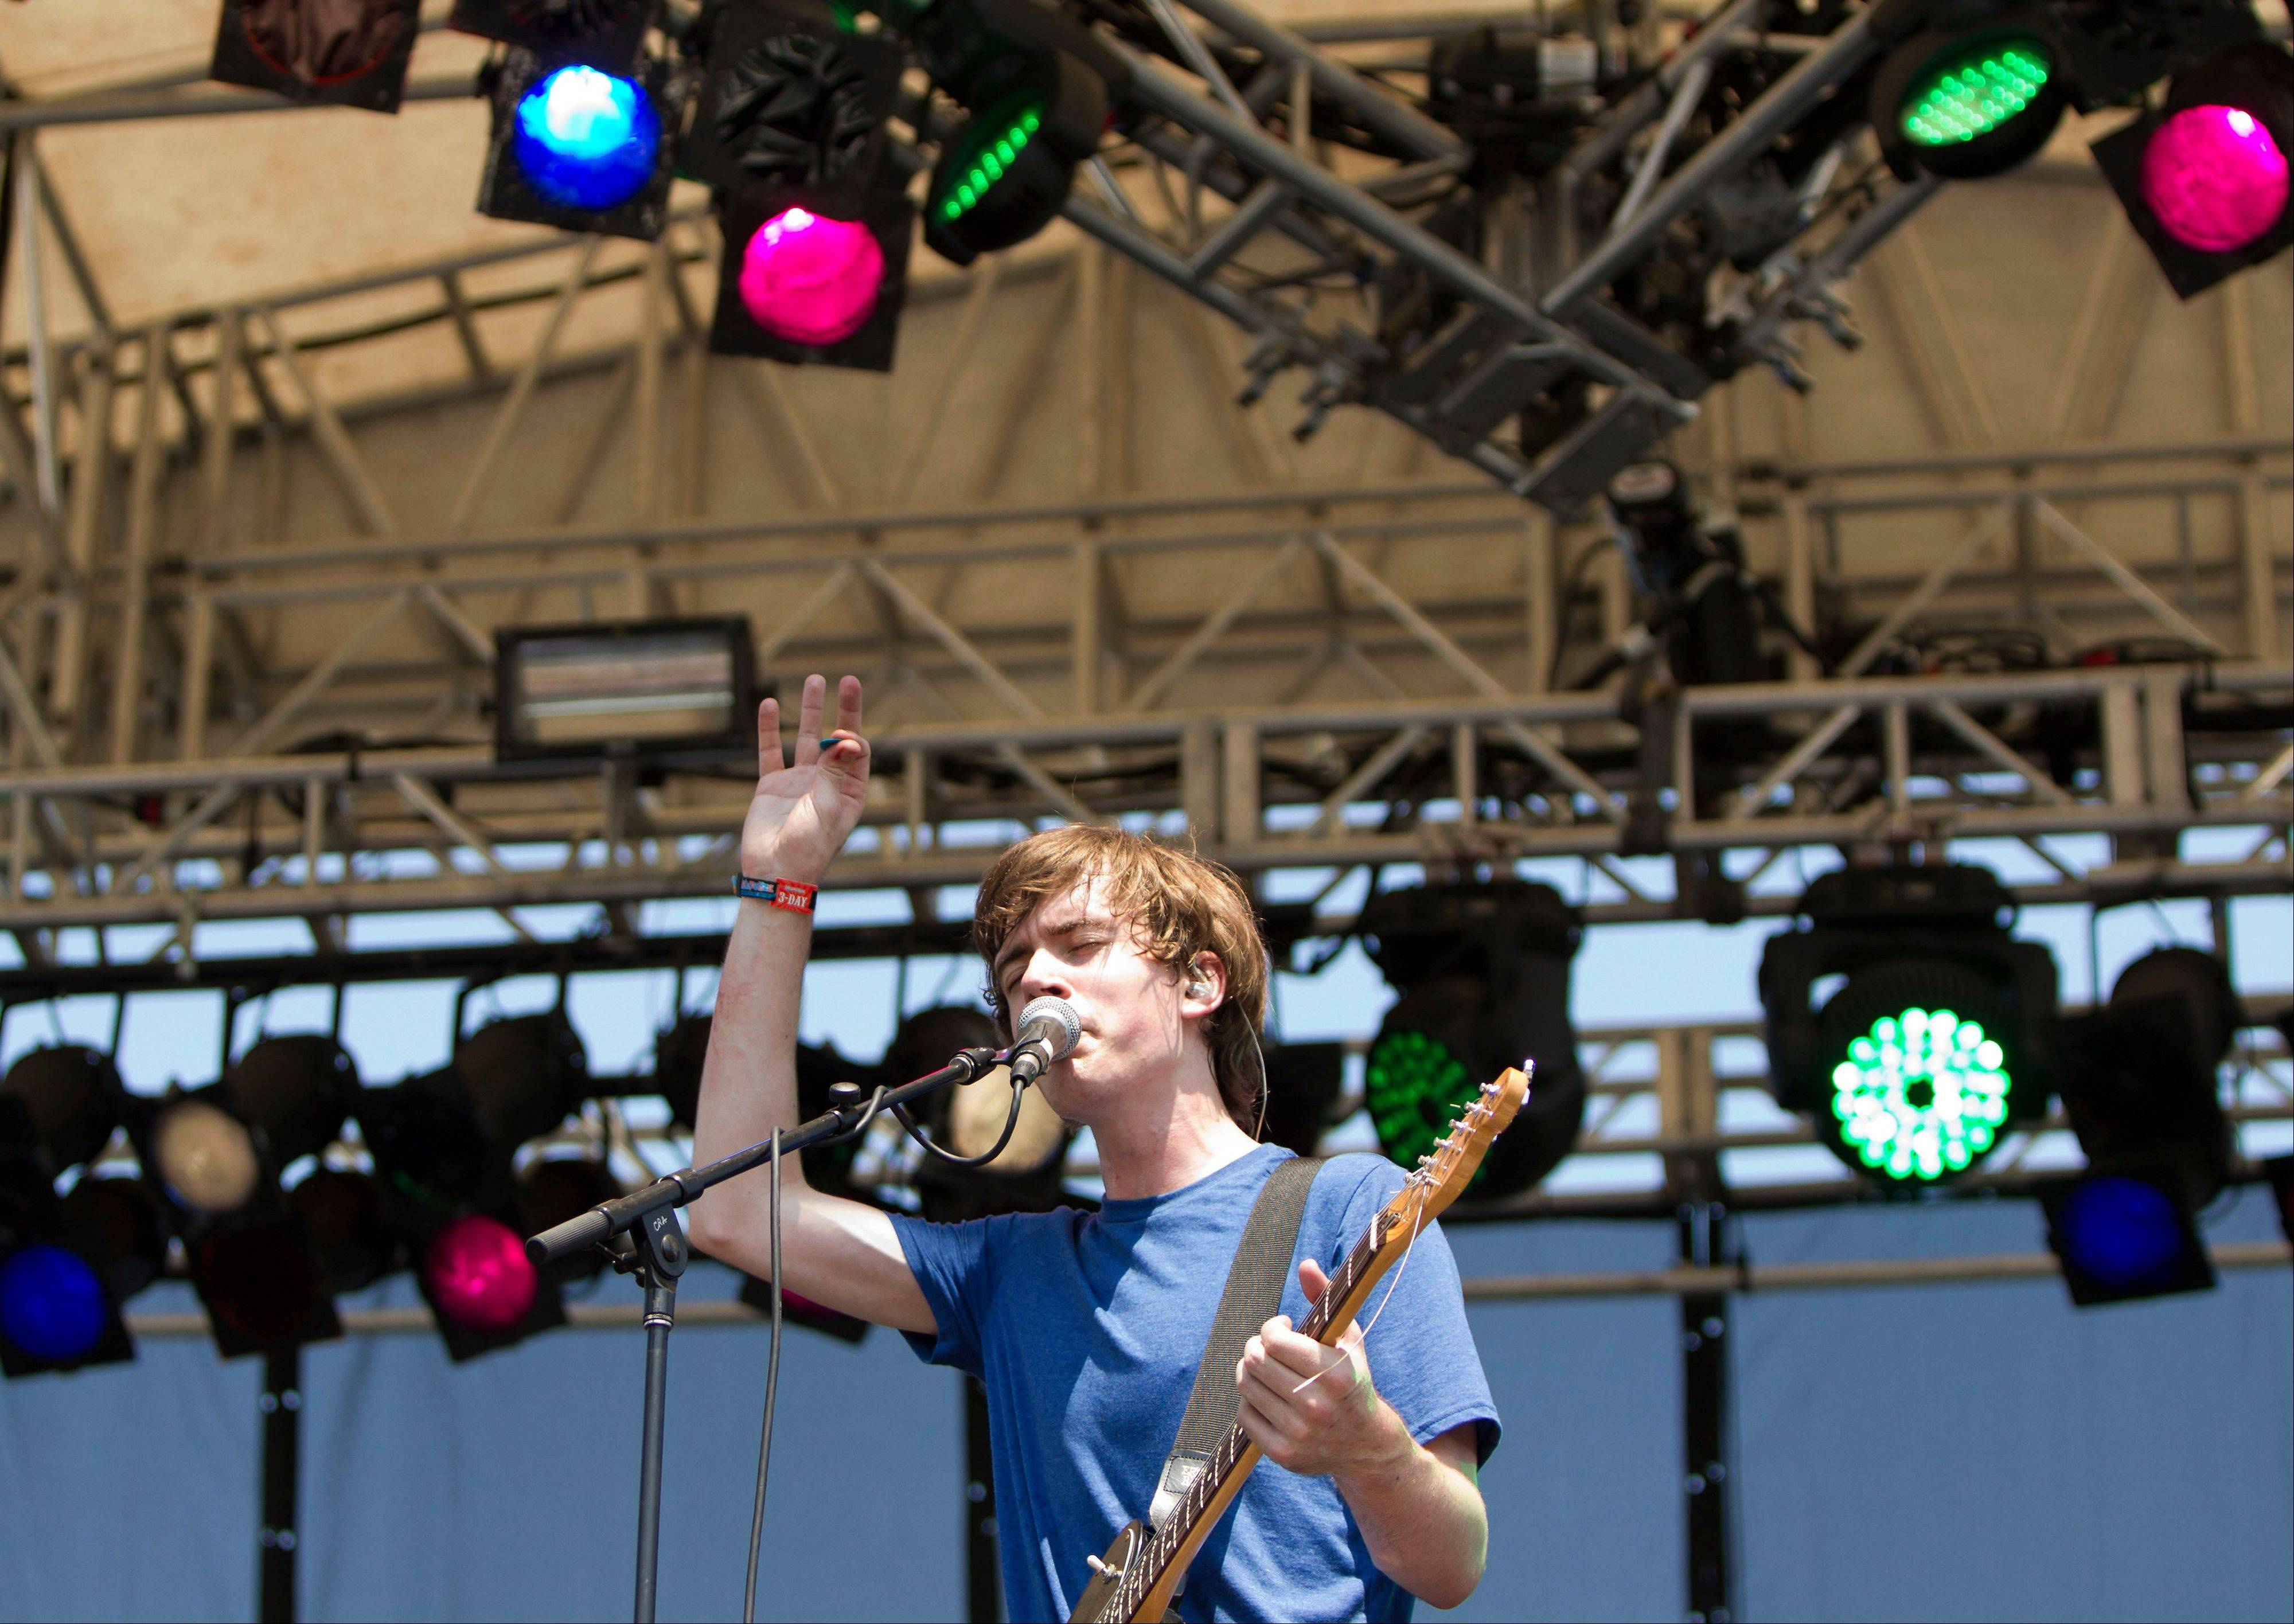 Alex Schaaf from Yellow Ostrich performs at Lollapalooza in Chicago's Grant Park on Friday, Aug. 3, 2012.